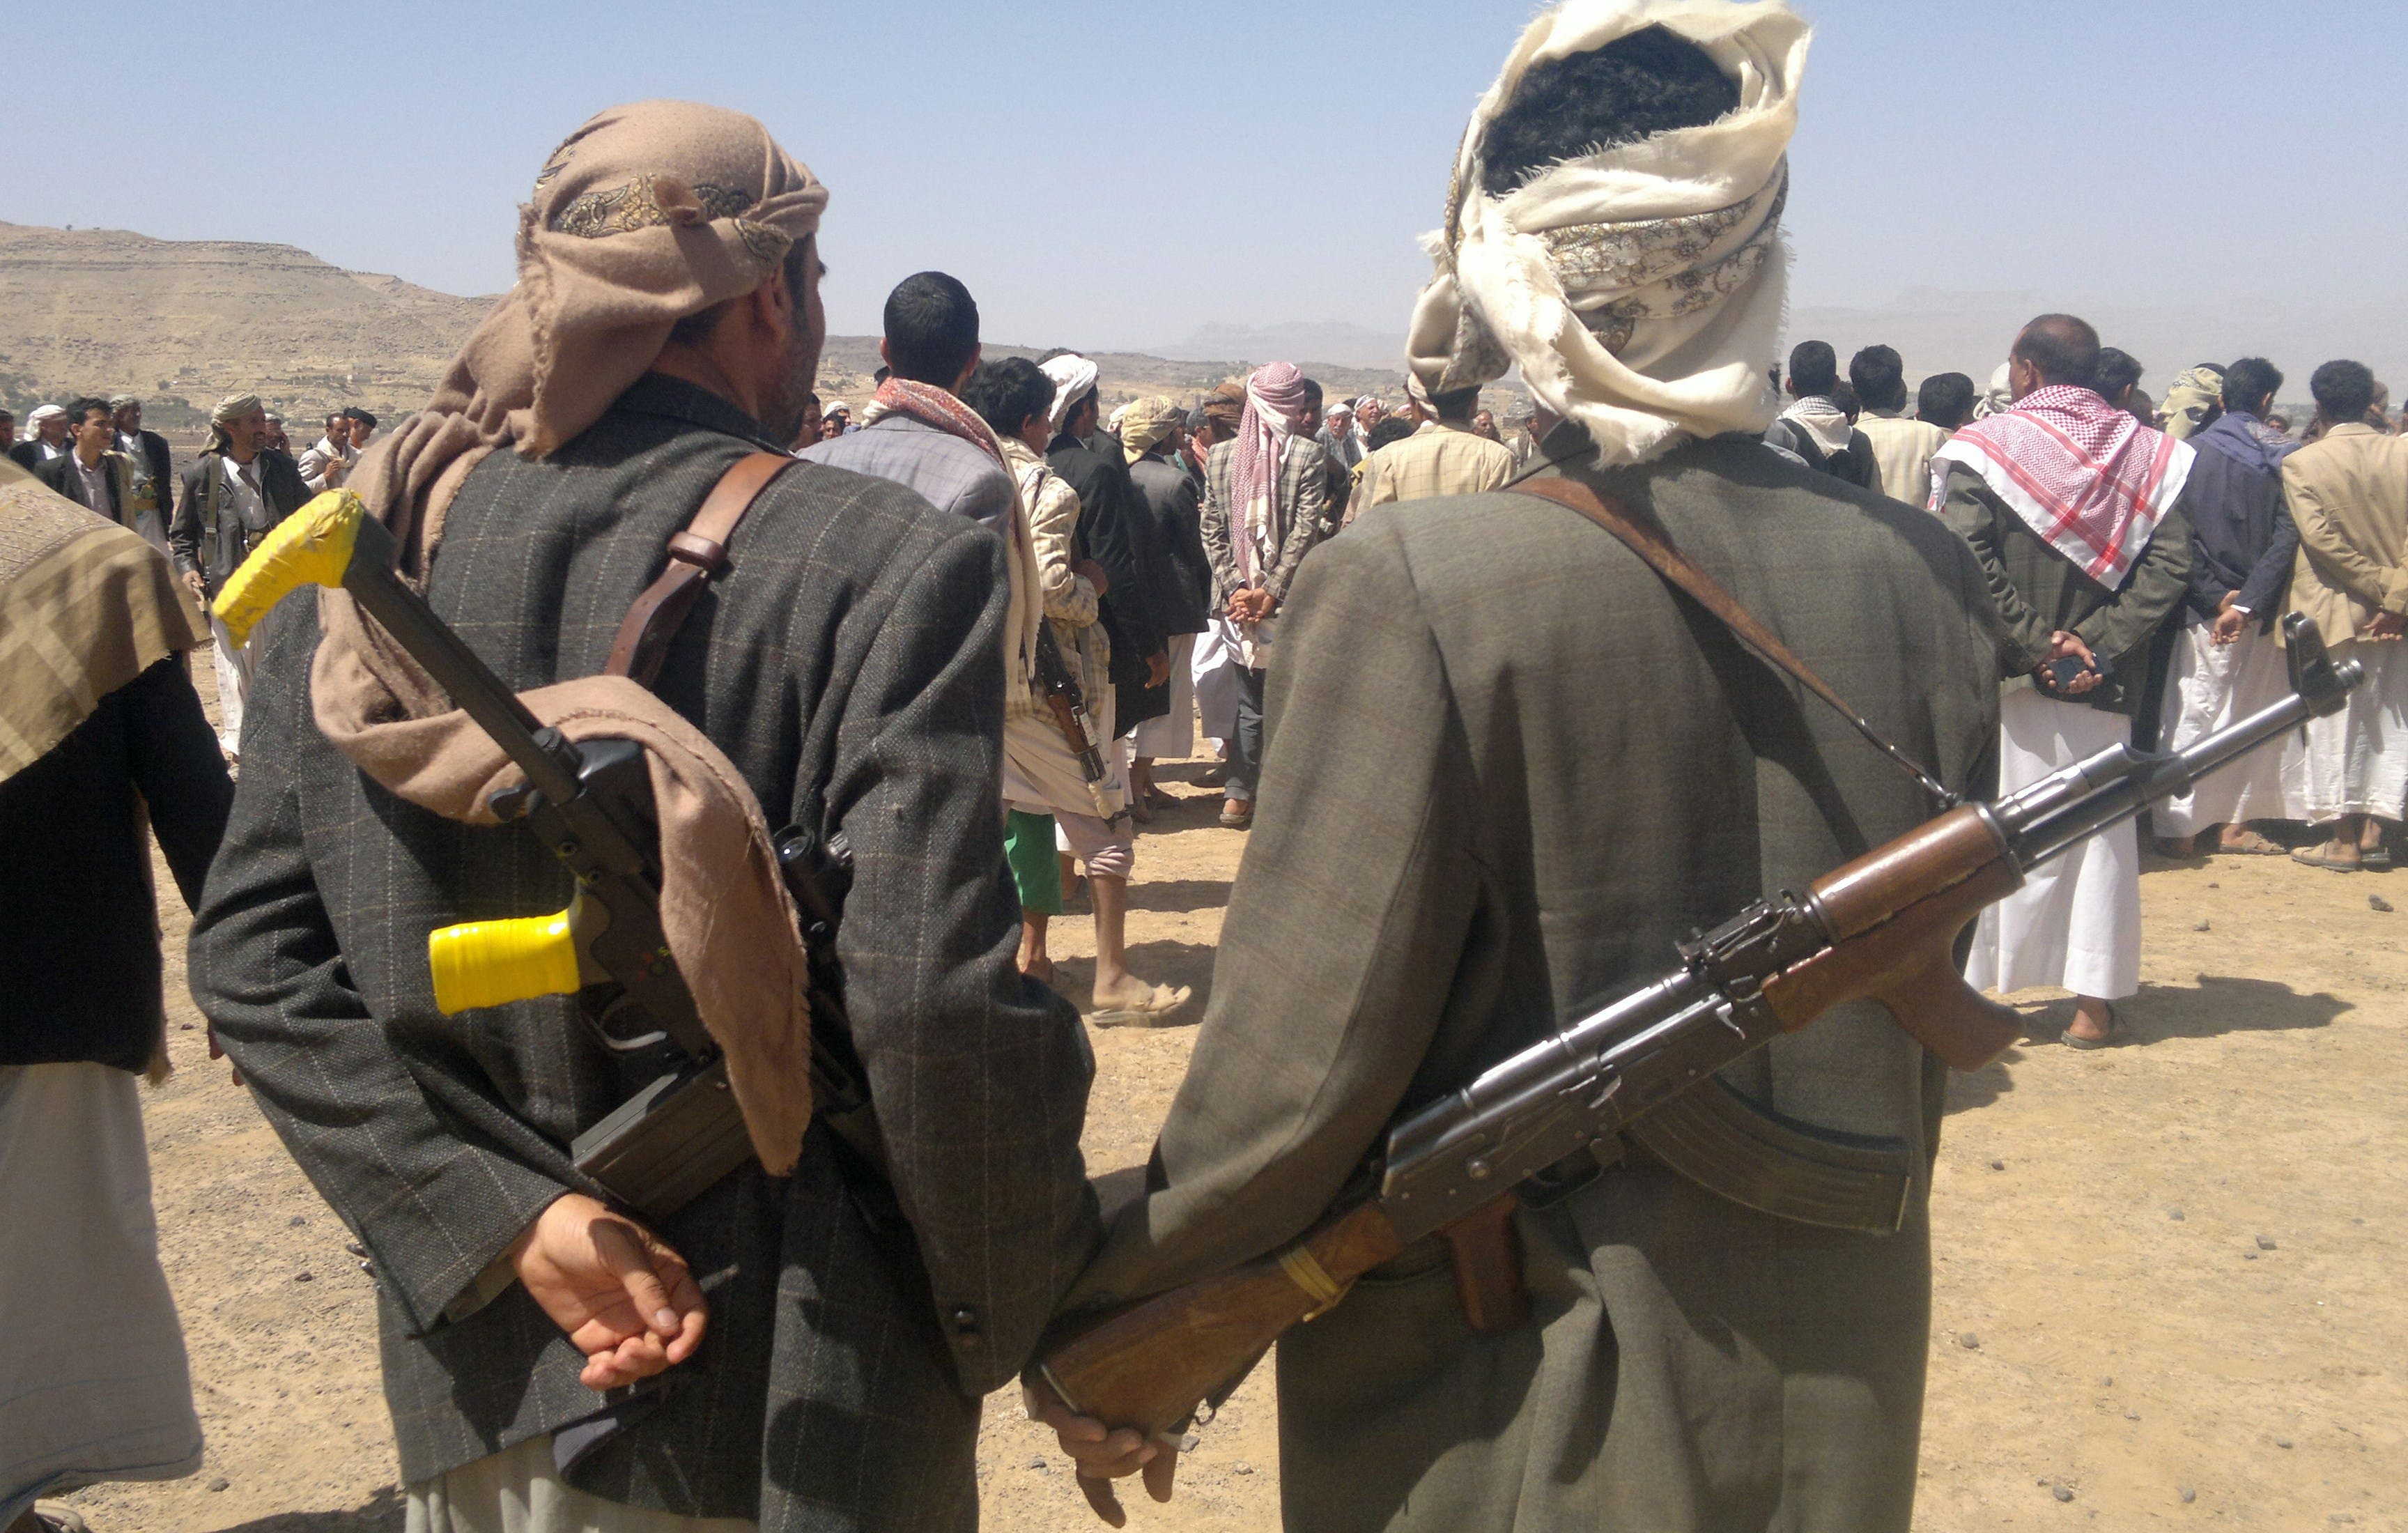 Yemeni Houthi tribesmen gather north of the capital Sanaa on April 10, 2014 as they rally against the death of five people killed in fighting between tribesmen and Yemeni soldiers. (AFP)